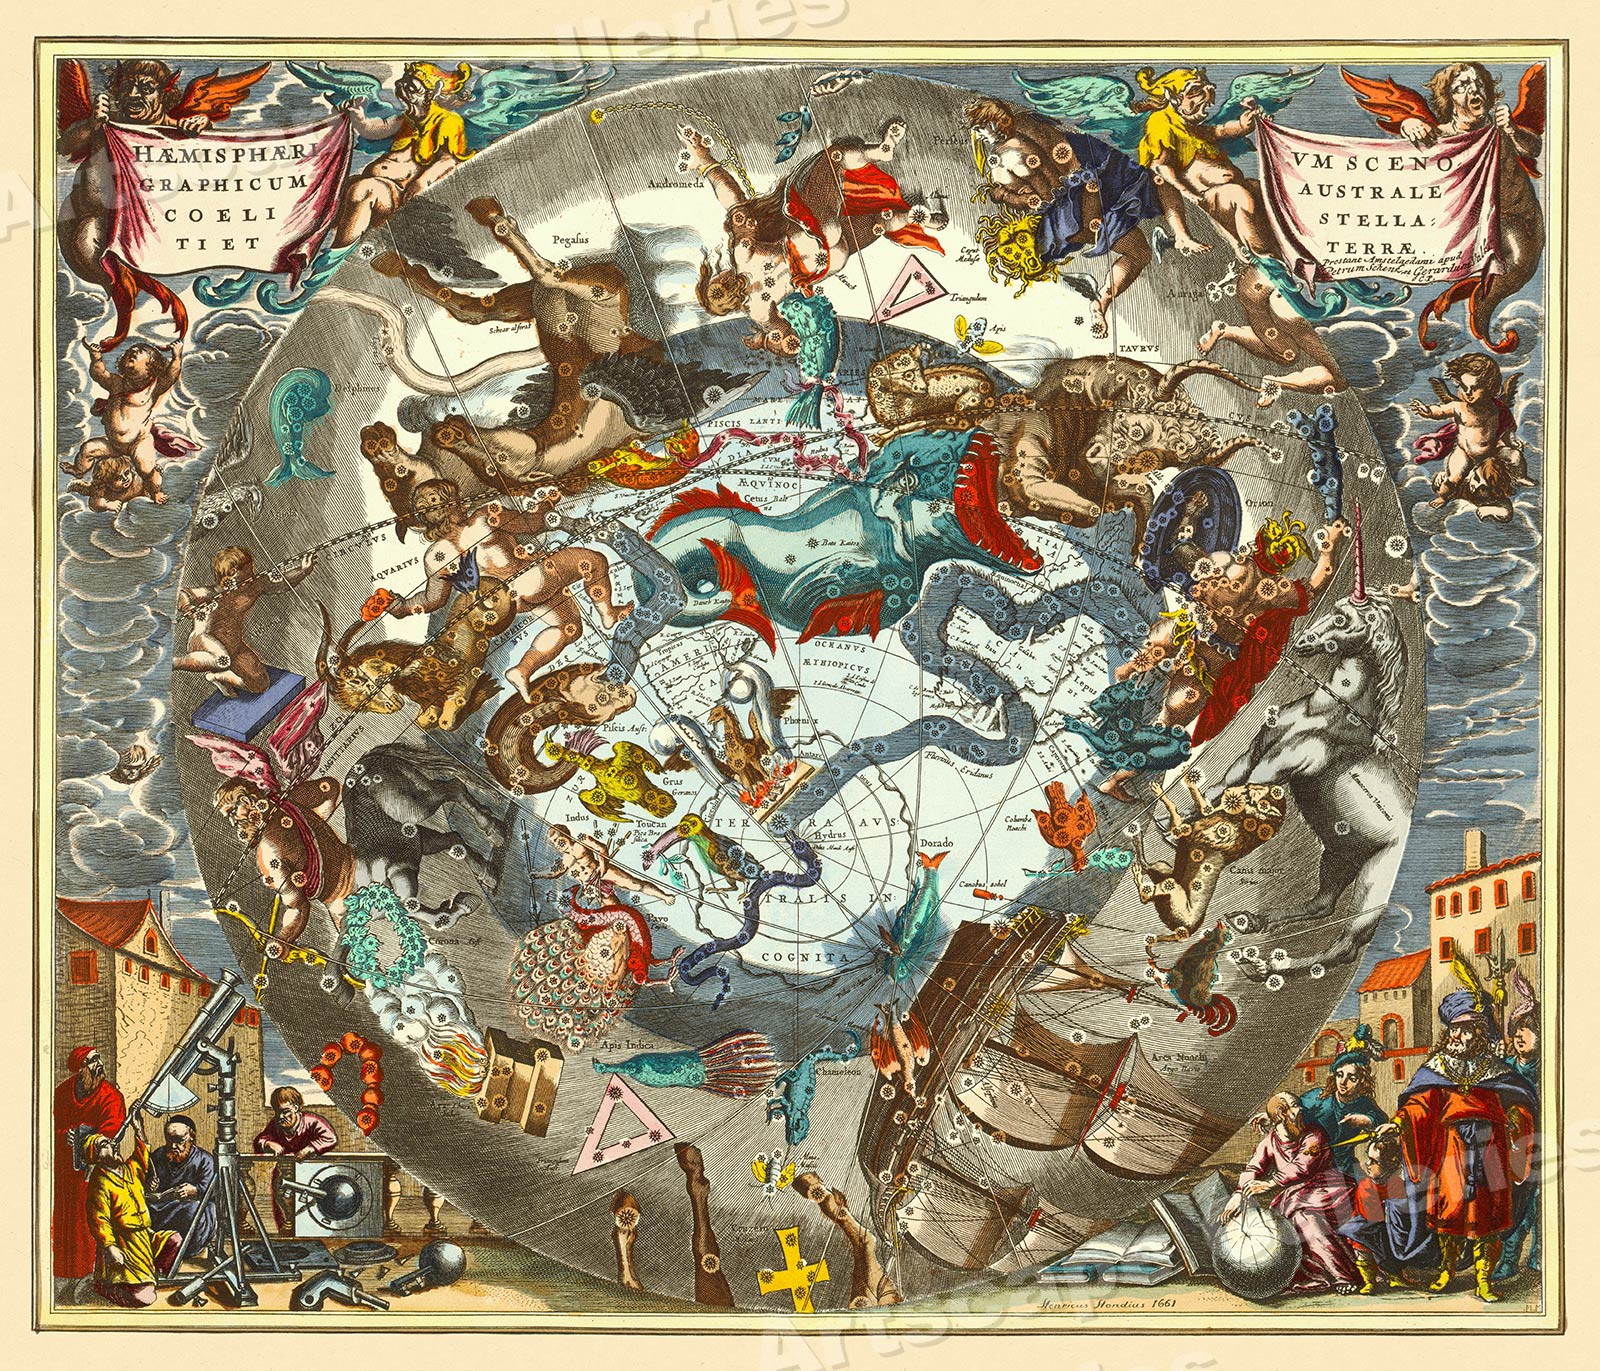 """Details about 1660s """"Celestial Chart of the Zodiac"""" Vintage Style on capitals of the world map, ancient greek astronomy map, moon map, fire map, astrology chart map, azimuth map, cat map, complete astrology map, earth map, world war z map, everest map, monkey map, constellation map, flags of the world map, skagen map, story map, zombie map, astrological sign map, scorpius map, titanic map,"""